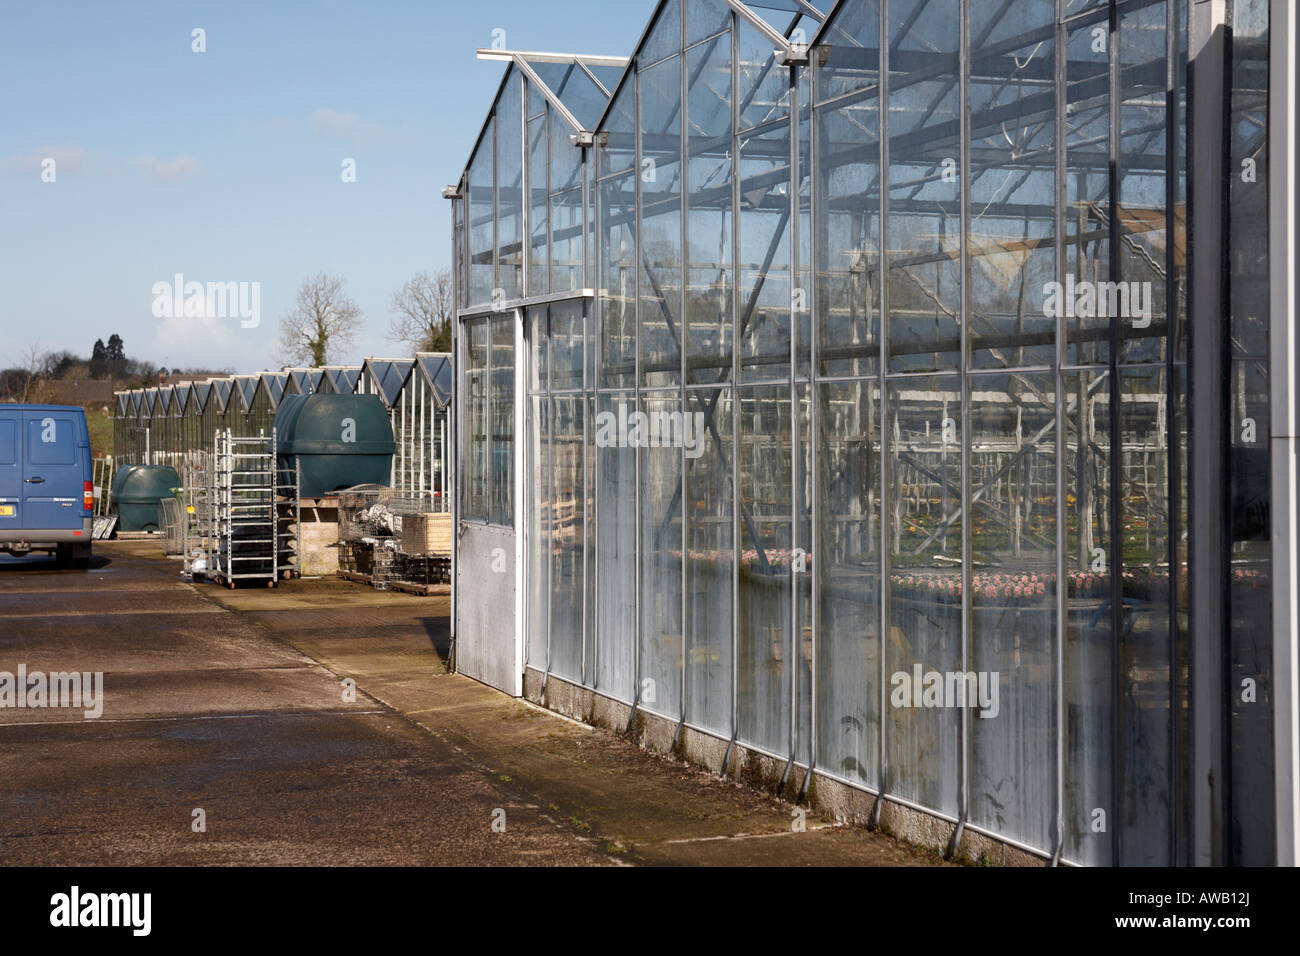 glass greenhouses in industrial scale at hoop hill nurseries county Armagh Northern Ireland - Stock Image